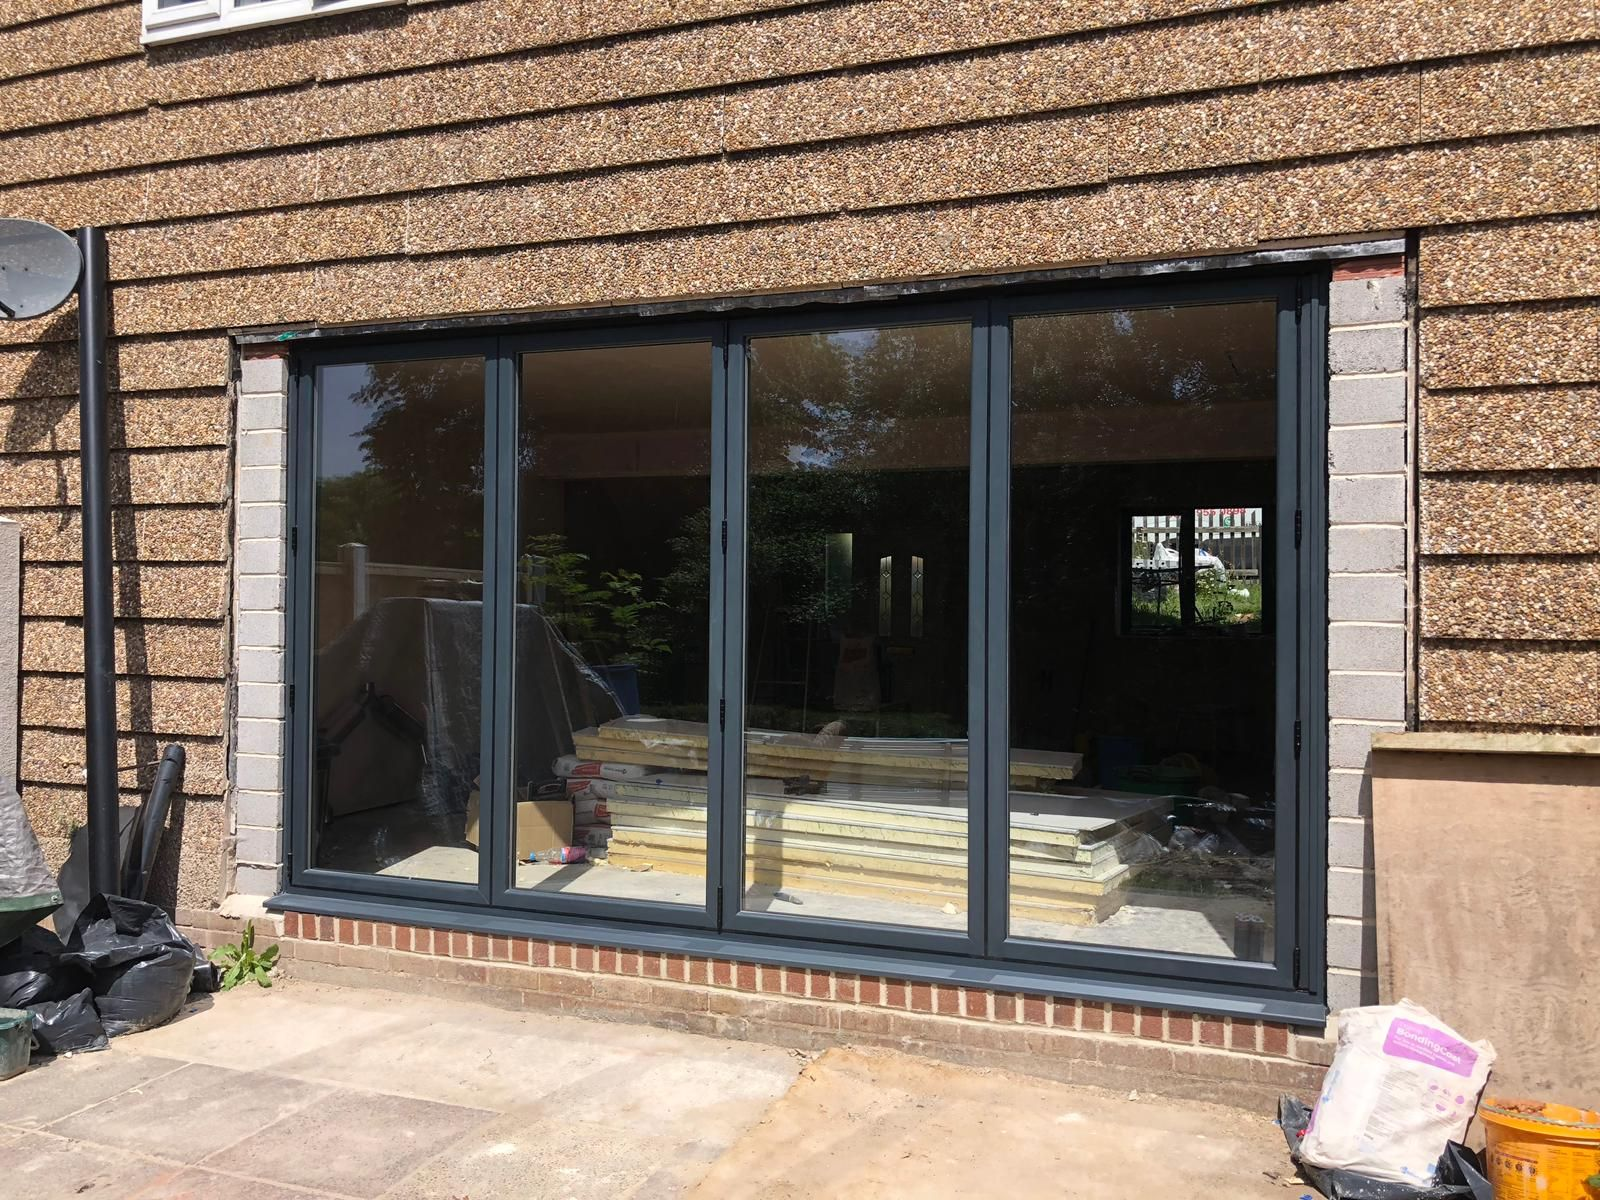 At Value Doors Our Cheap Bifold Doors Guarantee To Enhance Your Home How Much Are Bifold Doors Well Our Bif With Images Bifold Doors Upvc French Doors Bifold Doors Cost